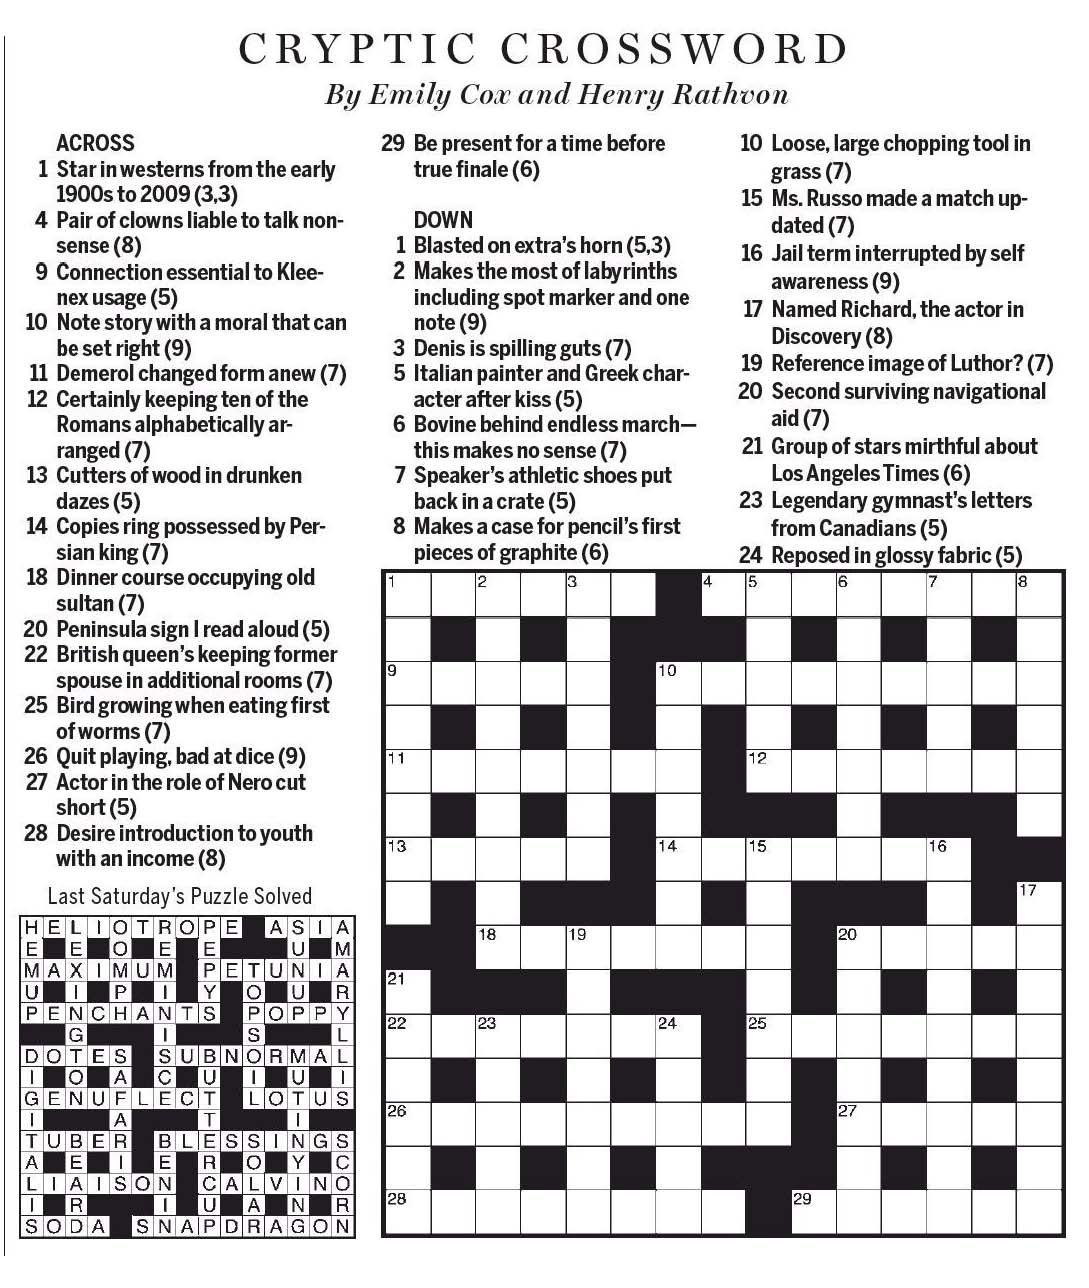 Introduction  sc 1 st  National Post Cryptic Crossword Forum & National Post Cryptic Crossword Forum: Saturday March 11 2017 ... 25forcollege.com